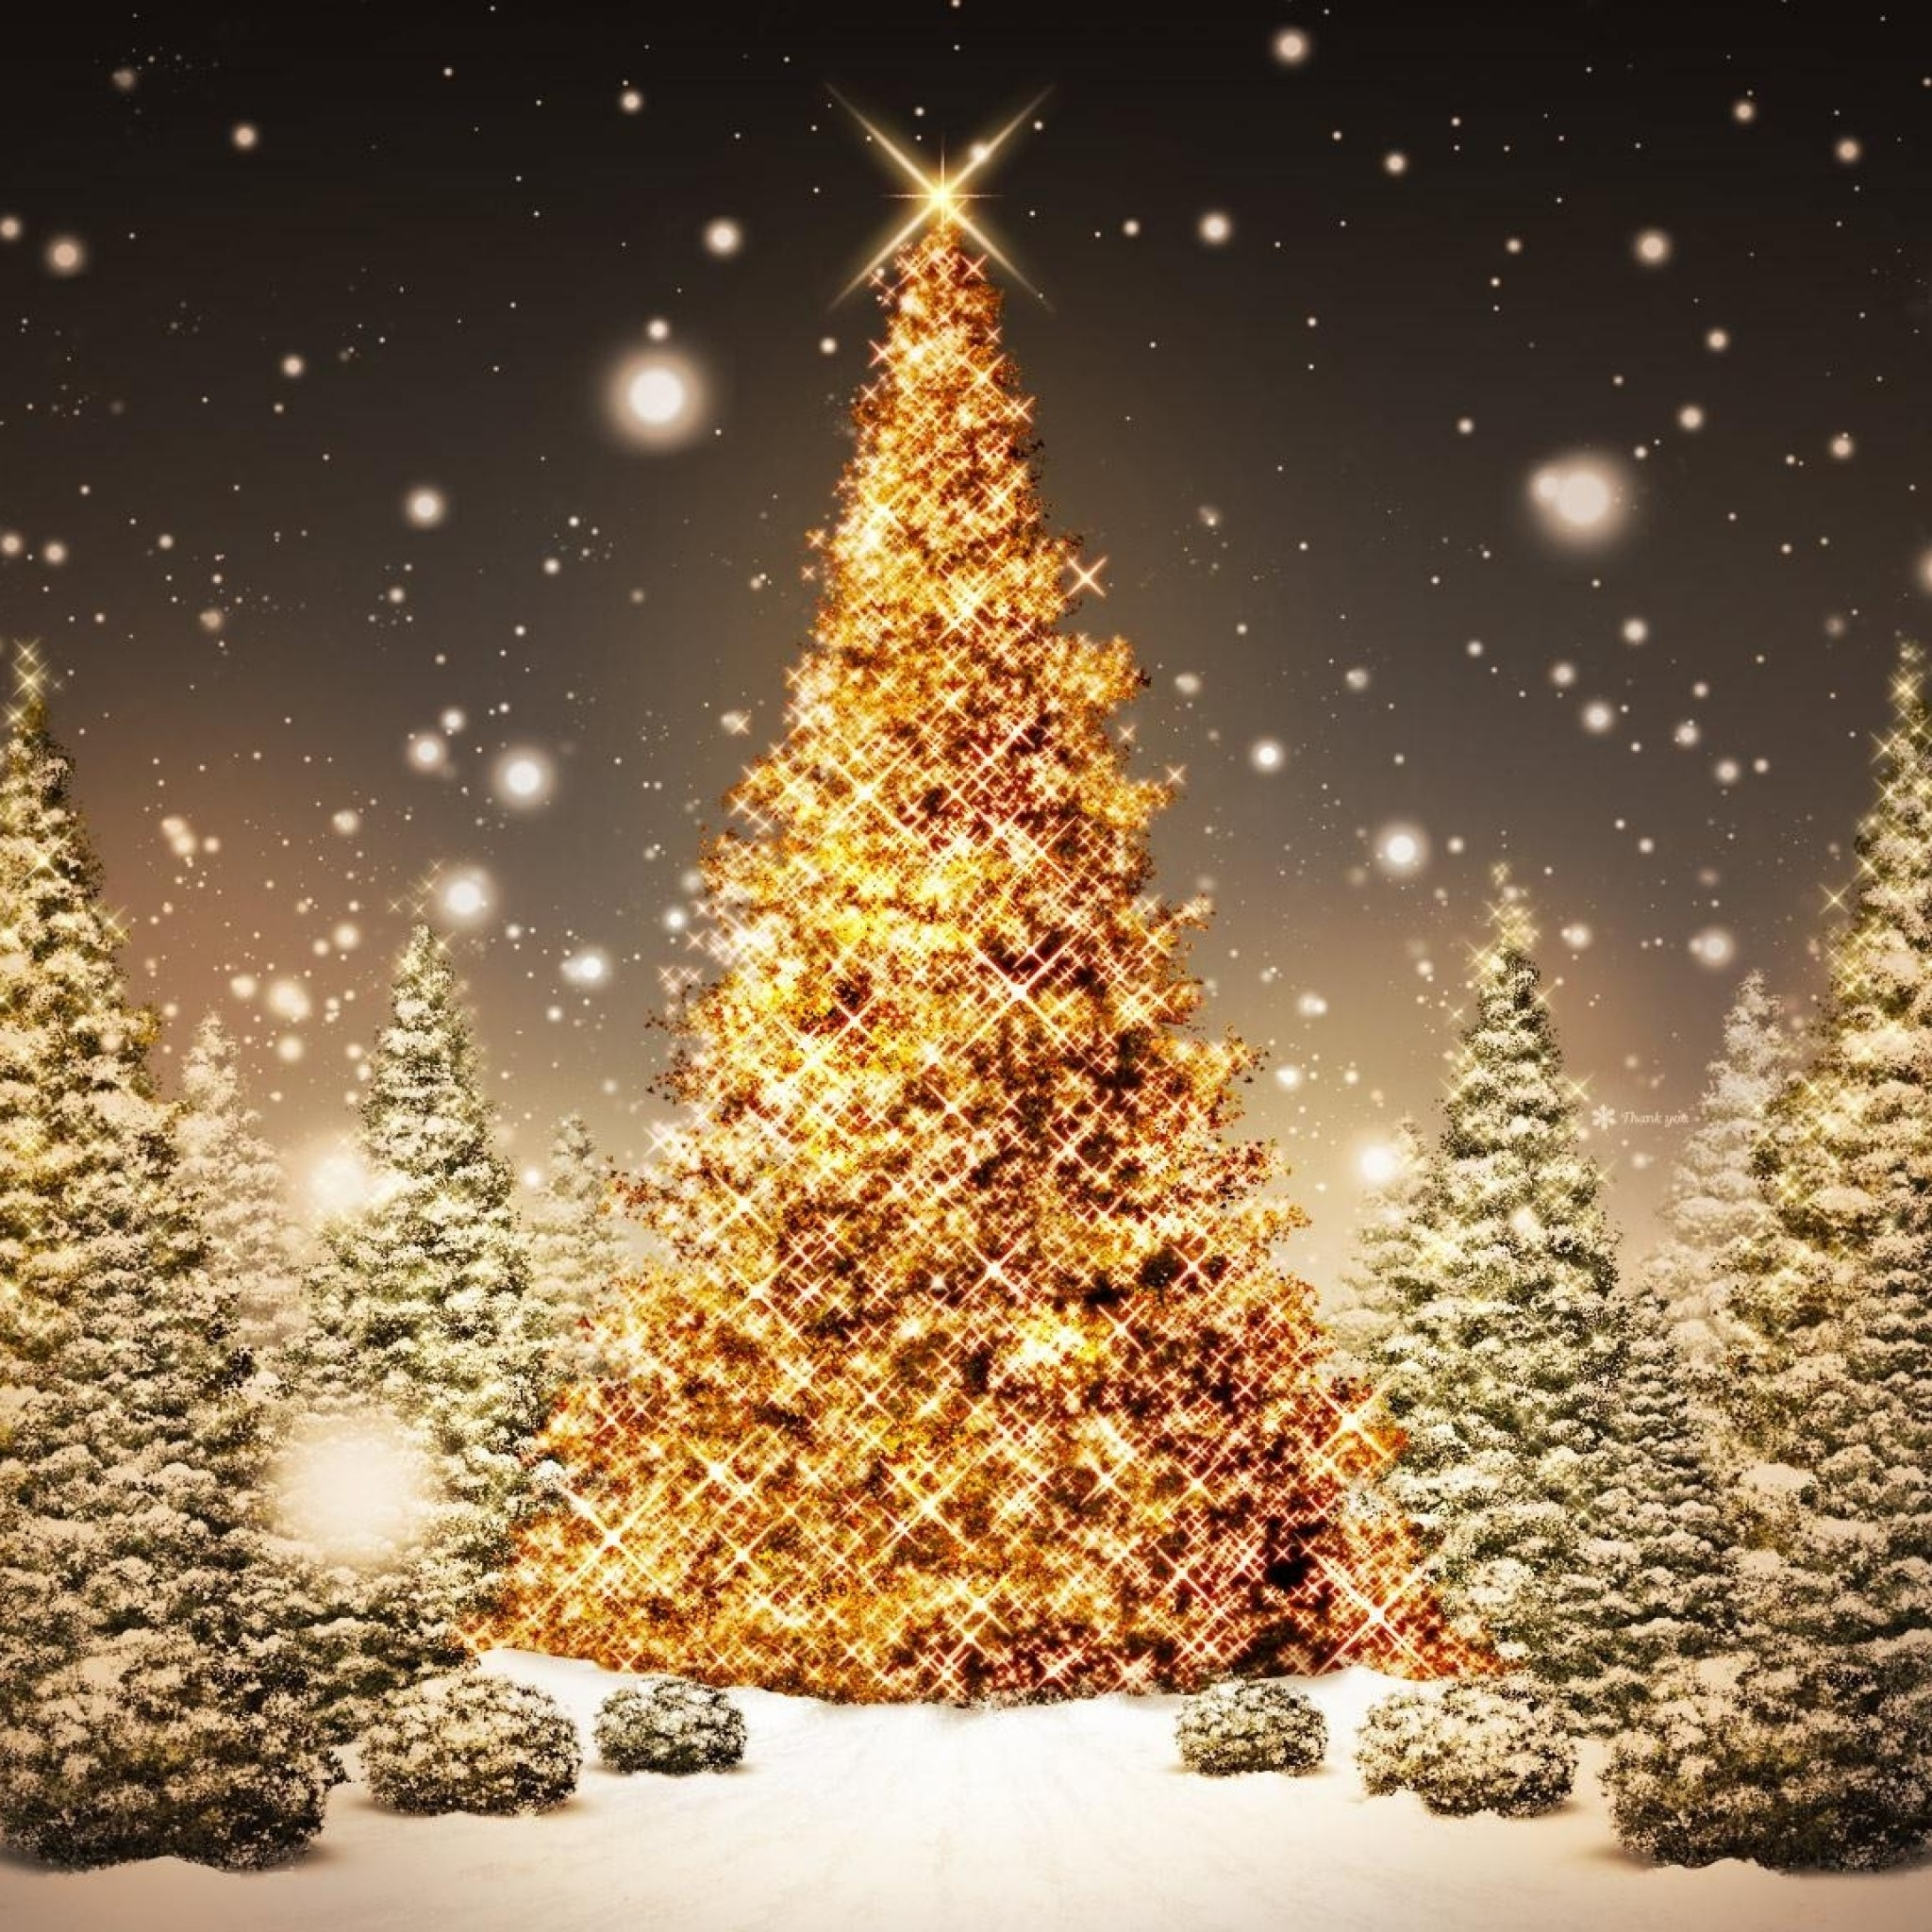 Animated Christmas Wallpaper For Ipad 70 Images